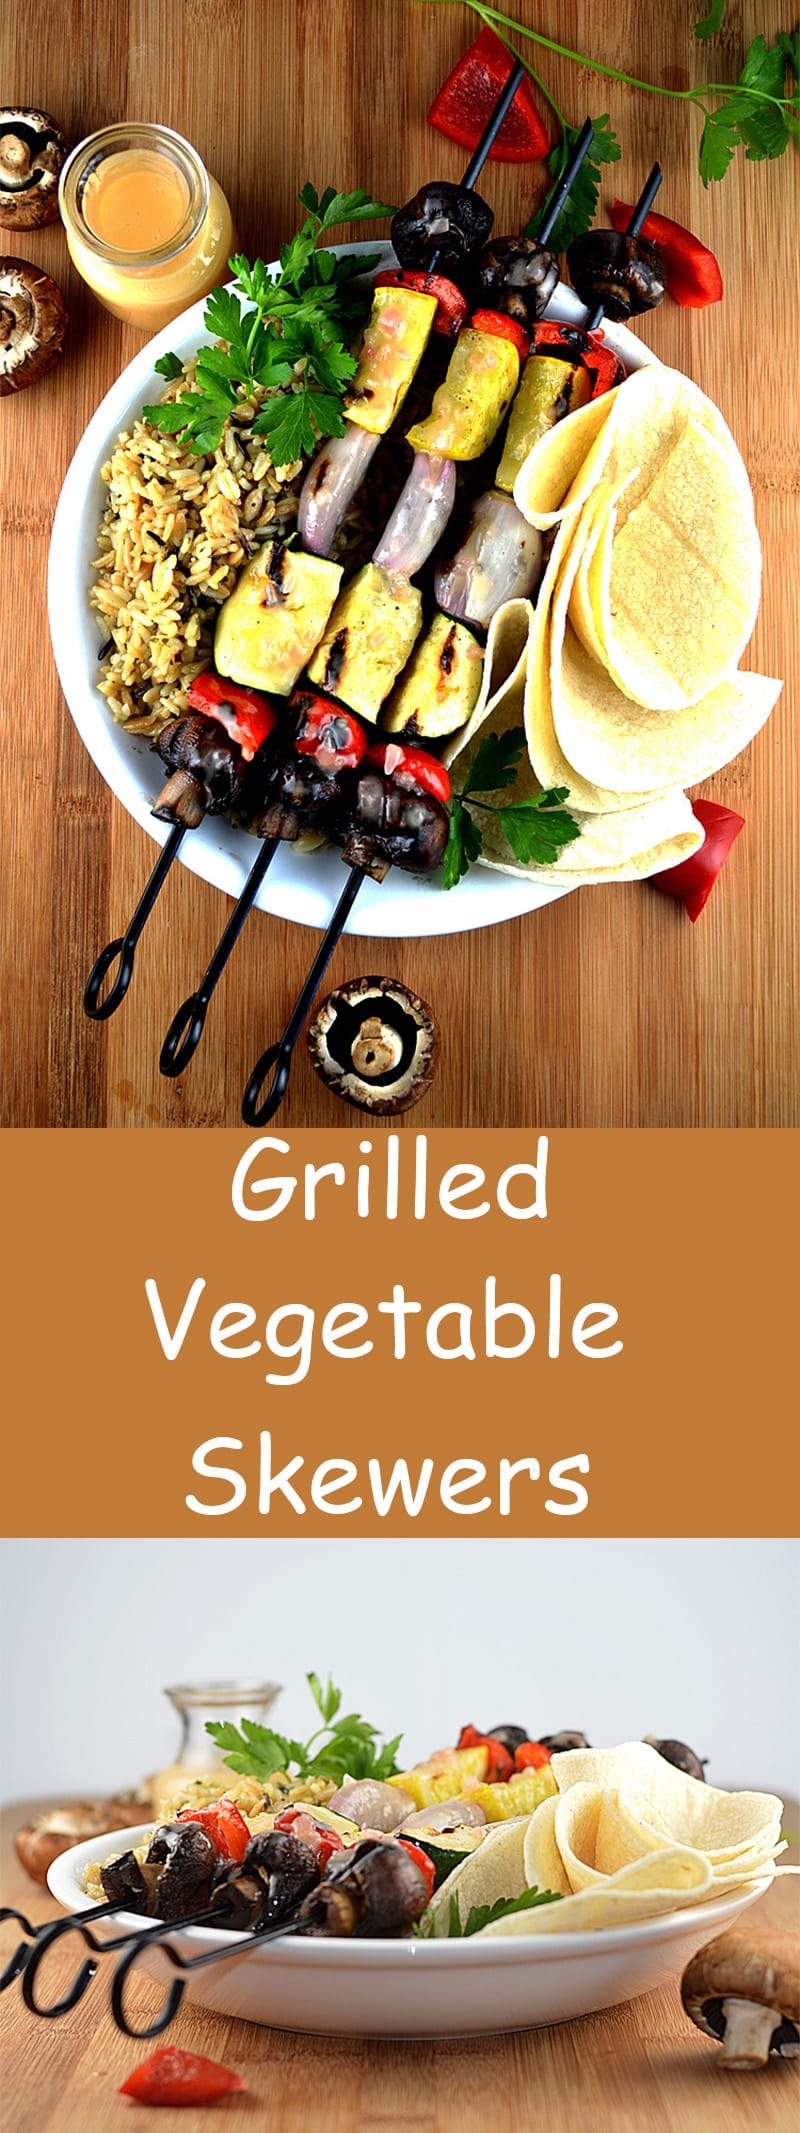 grilled-vegetable-skewers